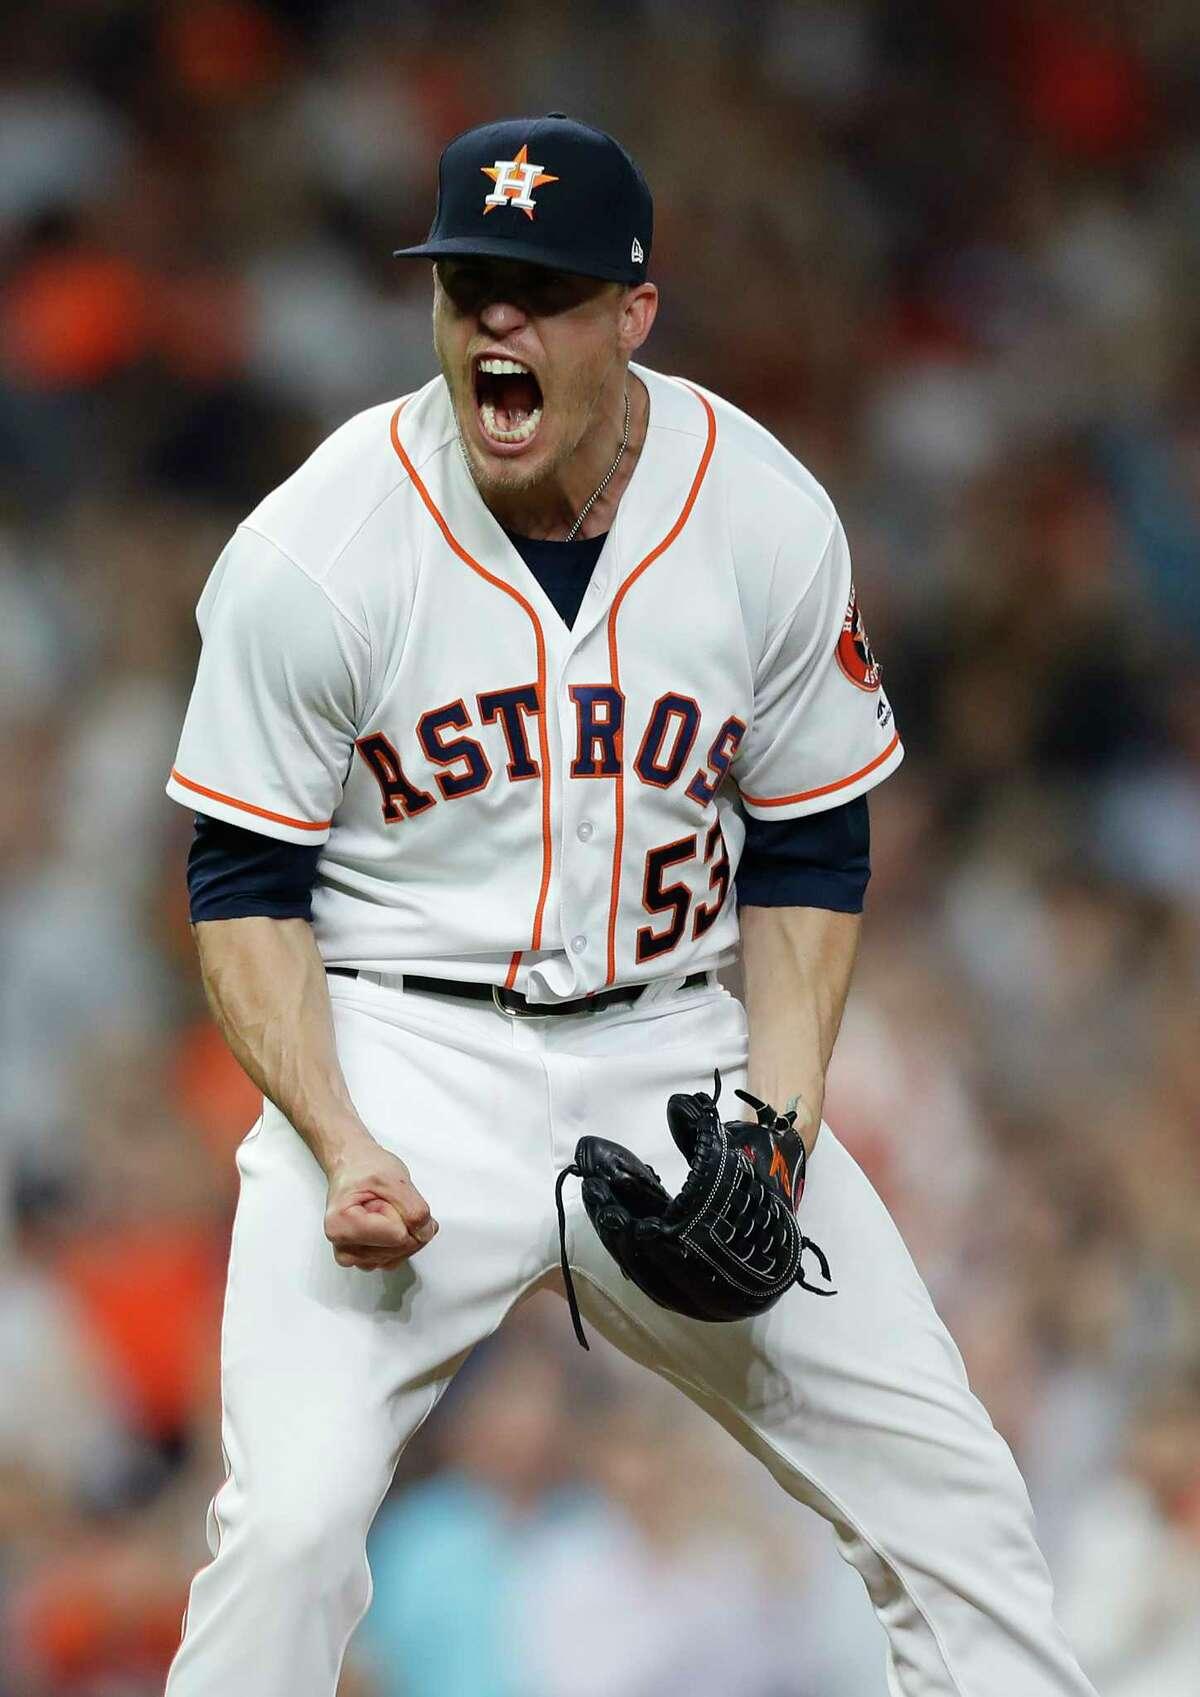 Houston Astros relief pitcher Ken Giles (53) reacts after striking out New York Yankees Didi Gregorius to end the ninth inning of an MLB game at Minute Maid Park, Friday, April 27, 2018, in Houston.